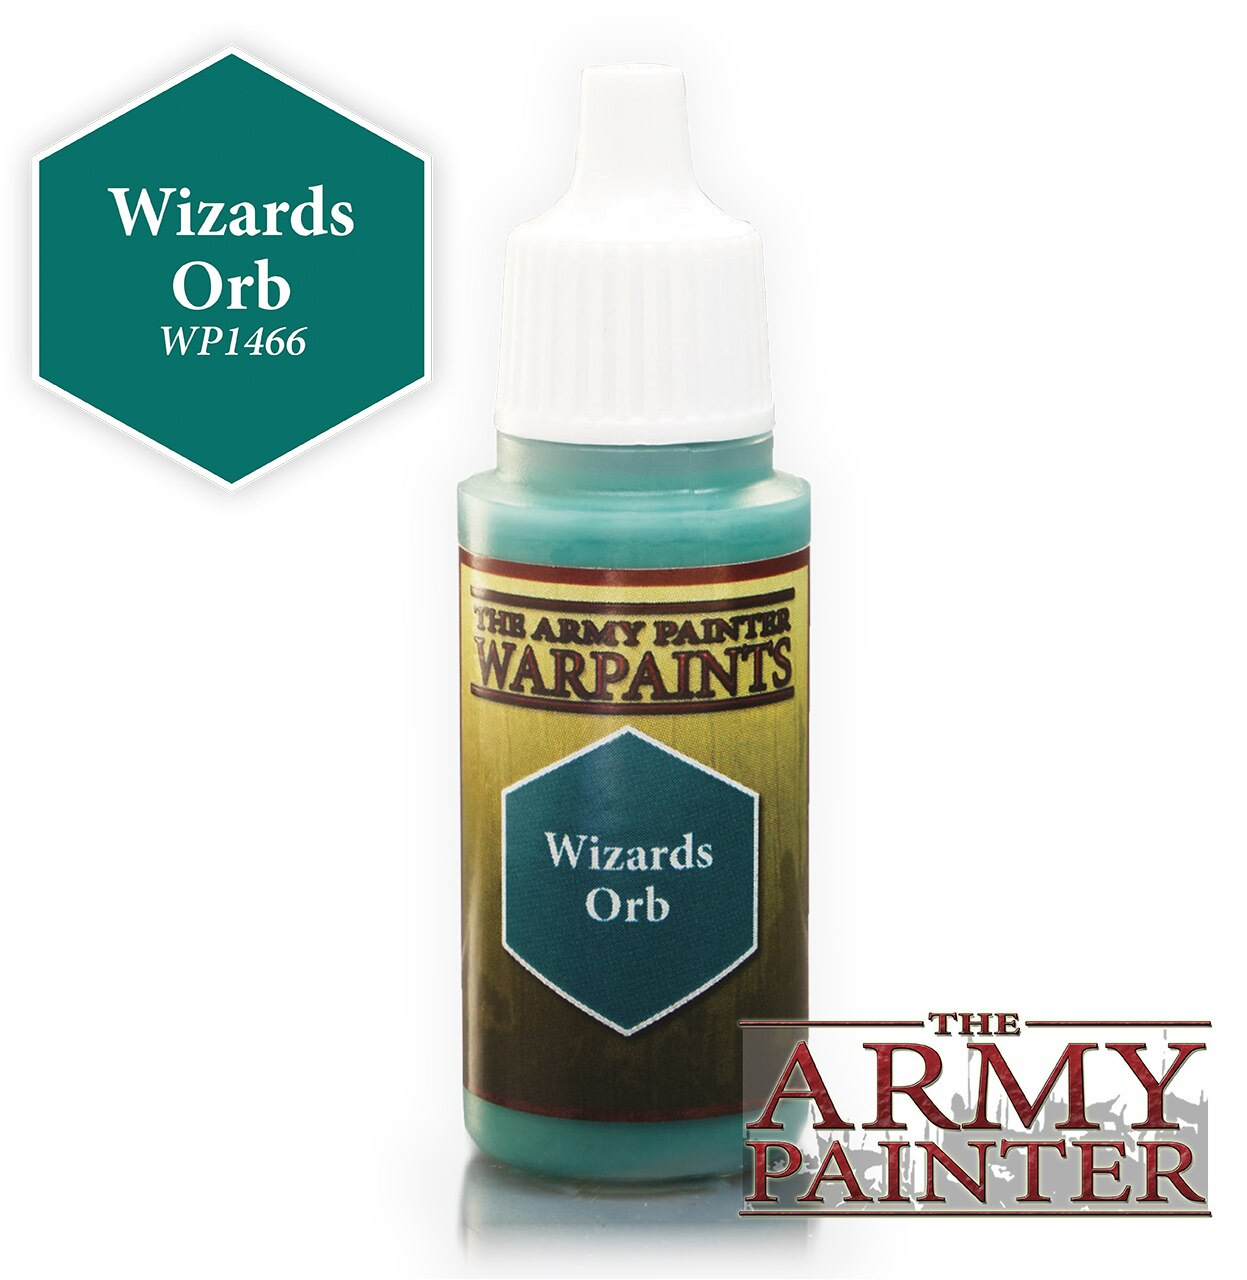 Army Painter Warpaint - Wizards Orb